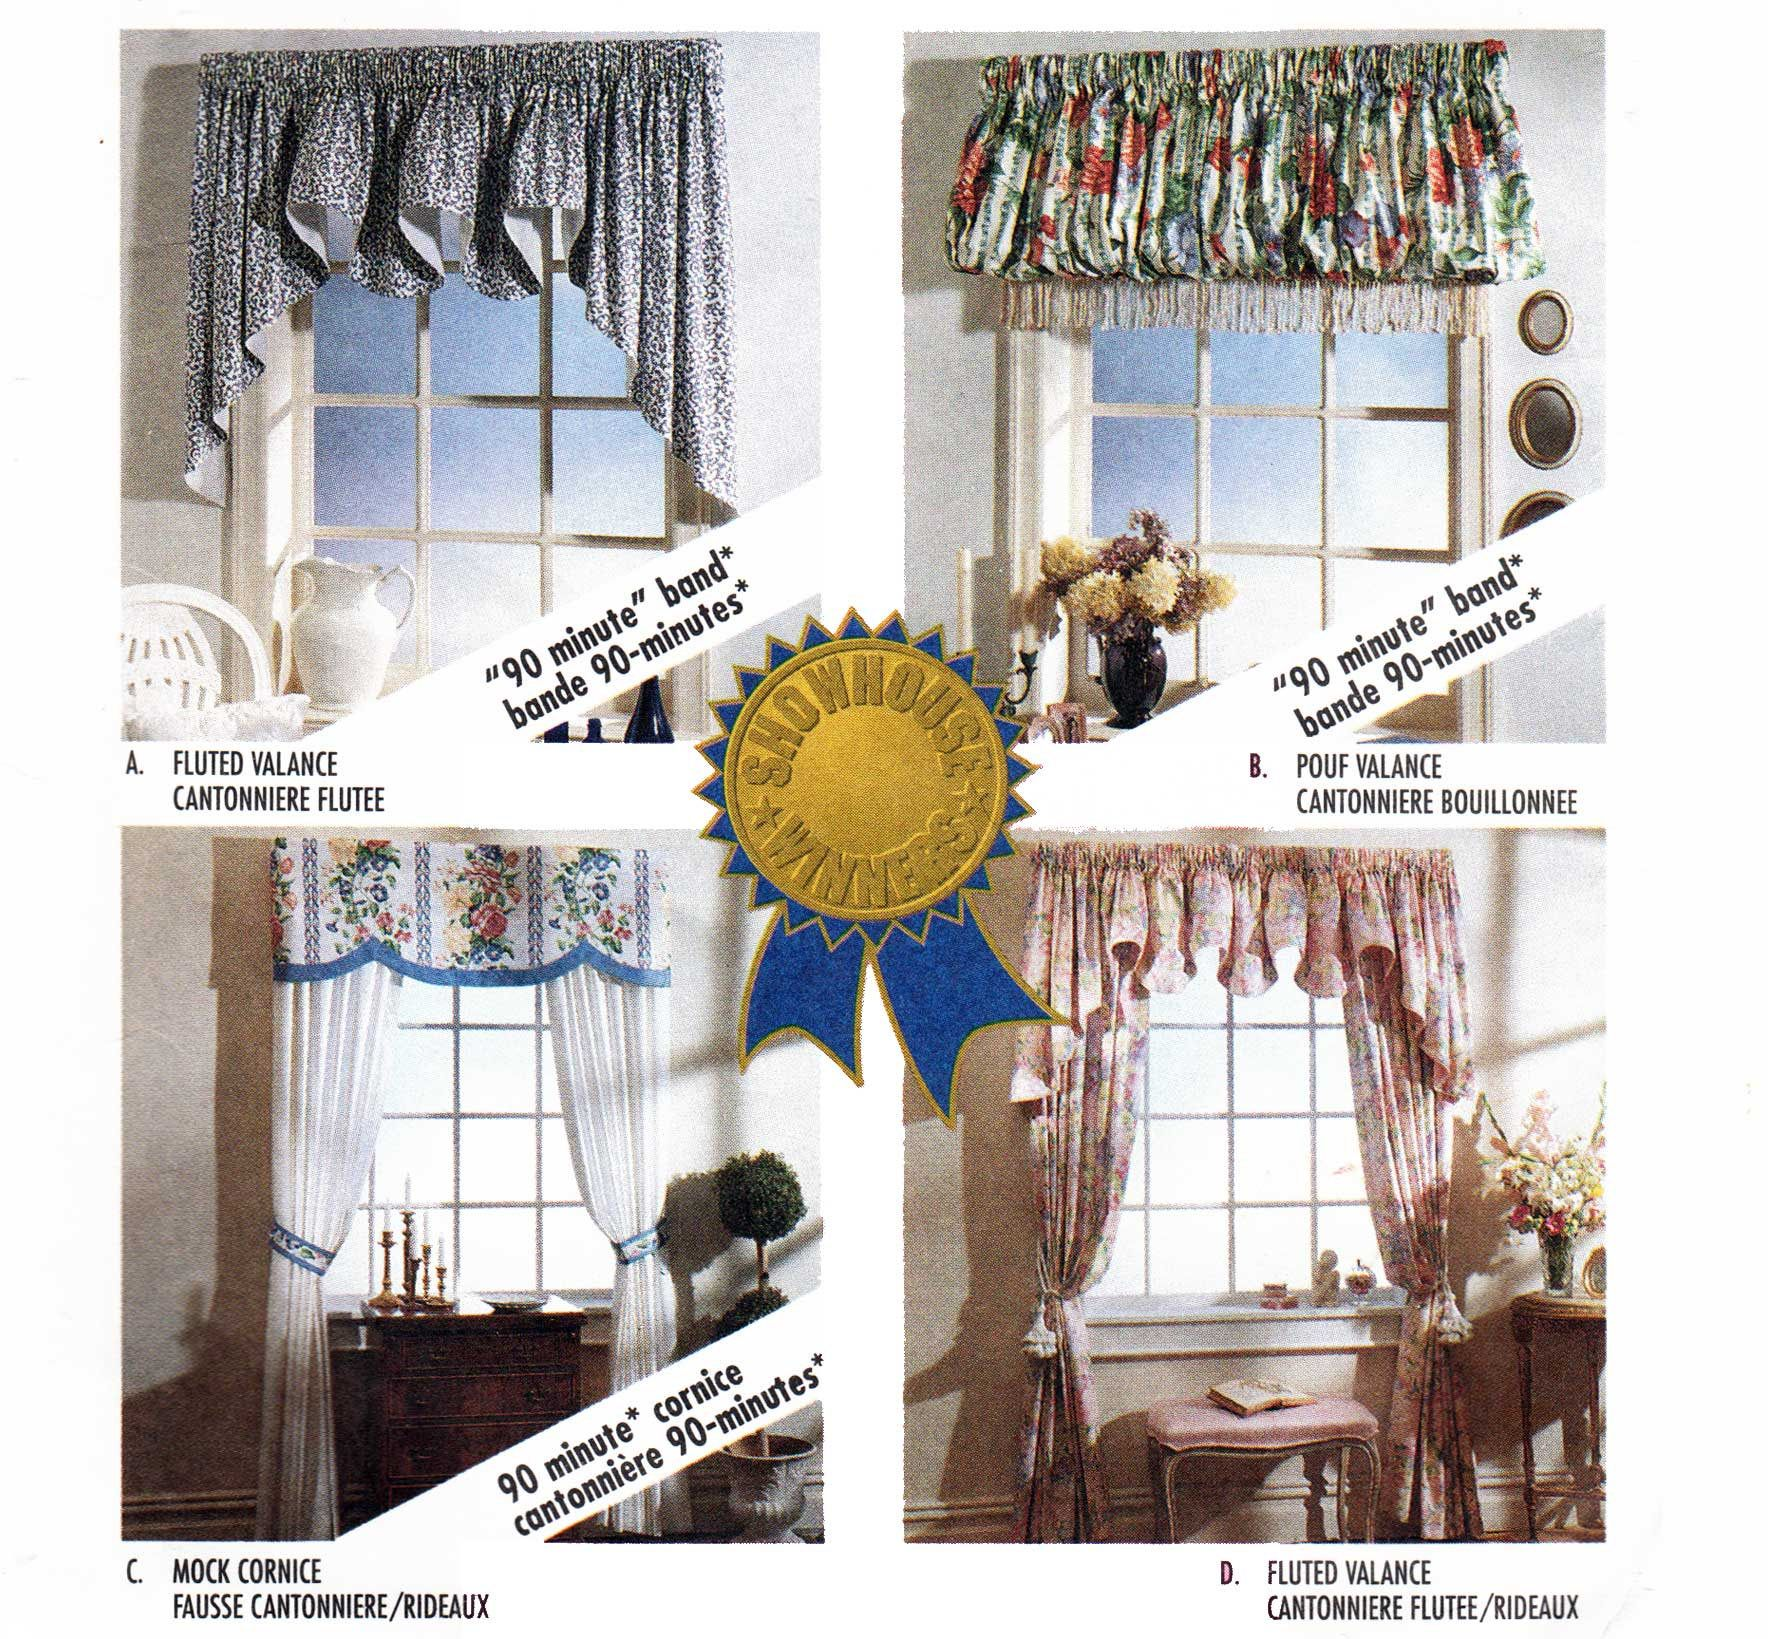 Window Treatments Pattern Valance And Jabots Pattern Mock Cornice And Drapes Pattern 1990s Home Decor Sewing Pattern Mccalls Sewing Patterns Valance Home Decor